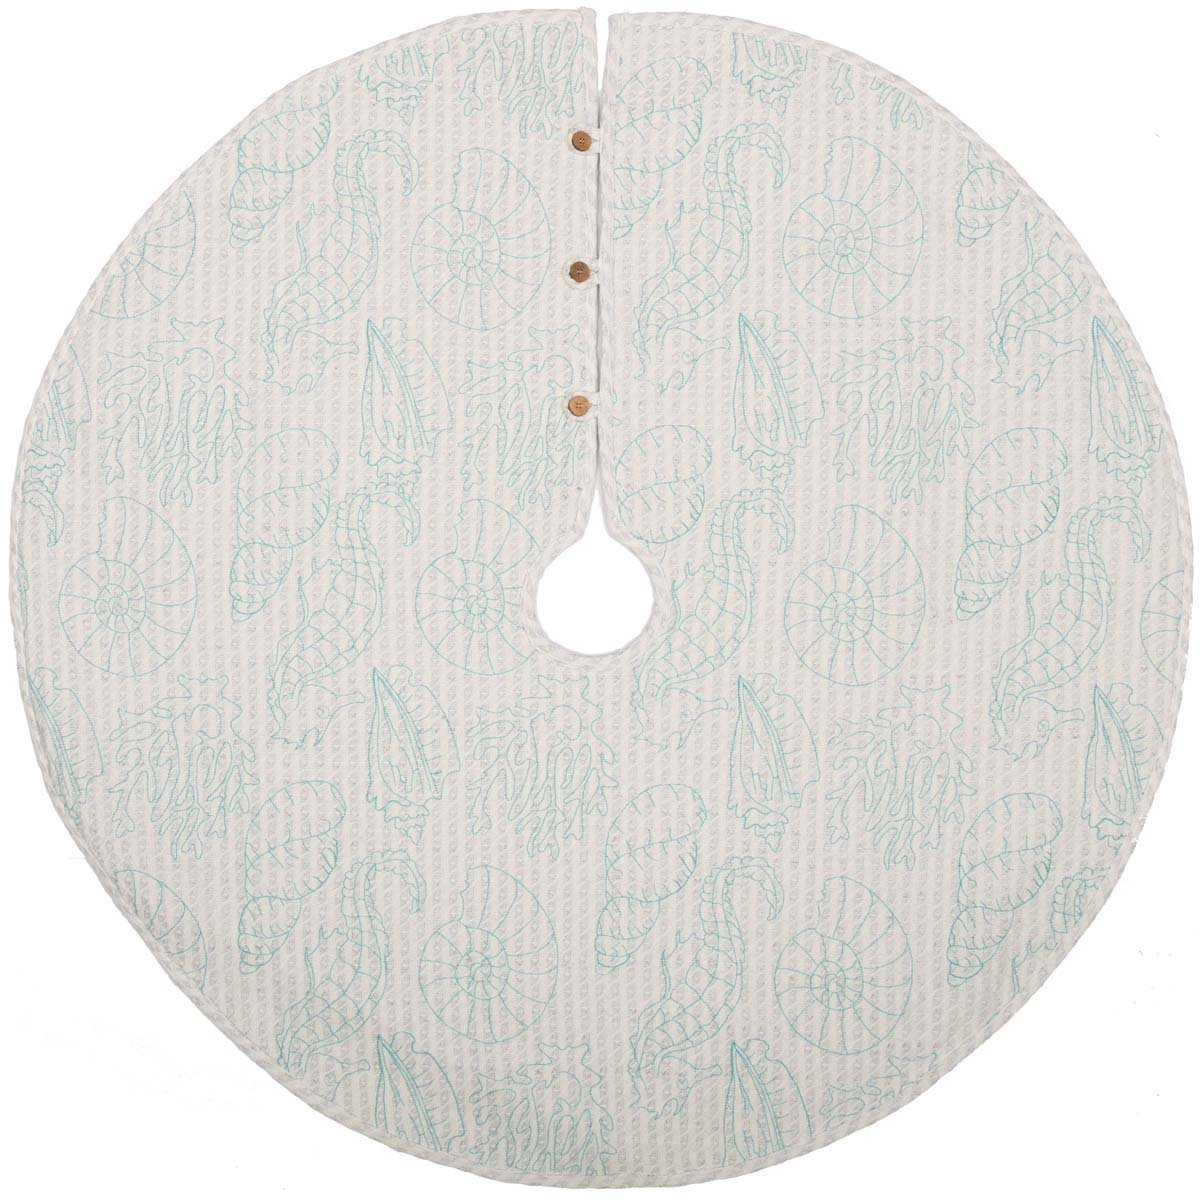 VHC Brands Christmas Holiday Decor - Arielle White Tree Skirt